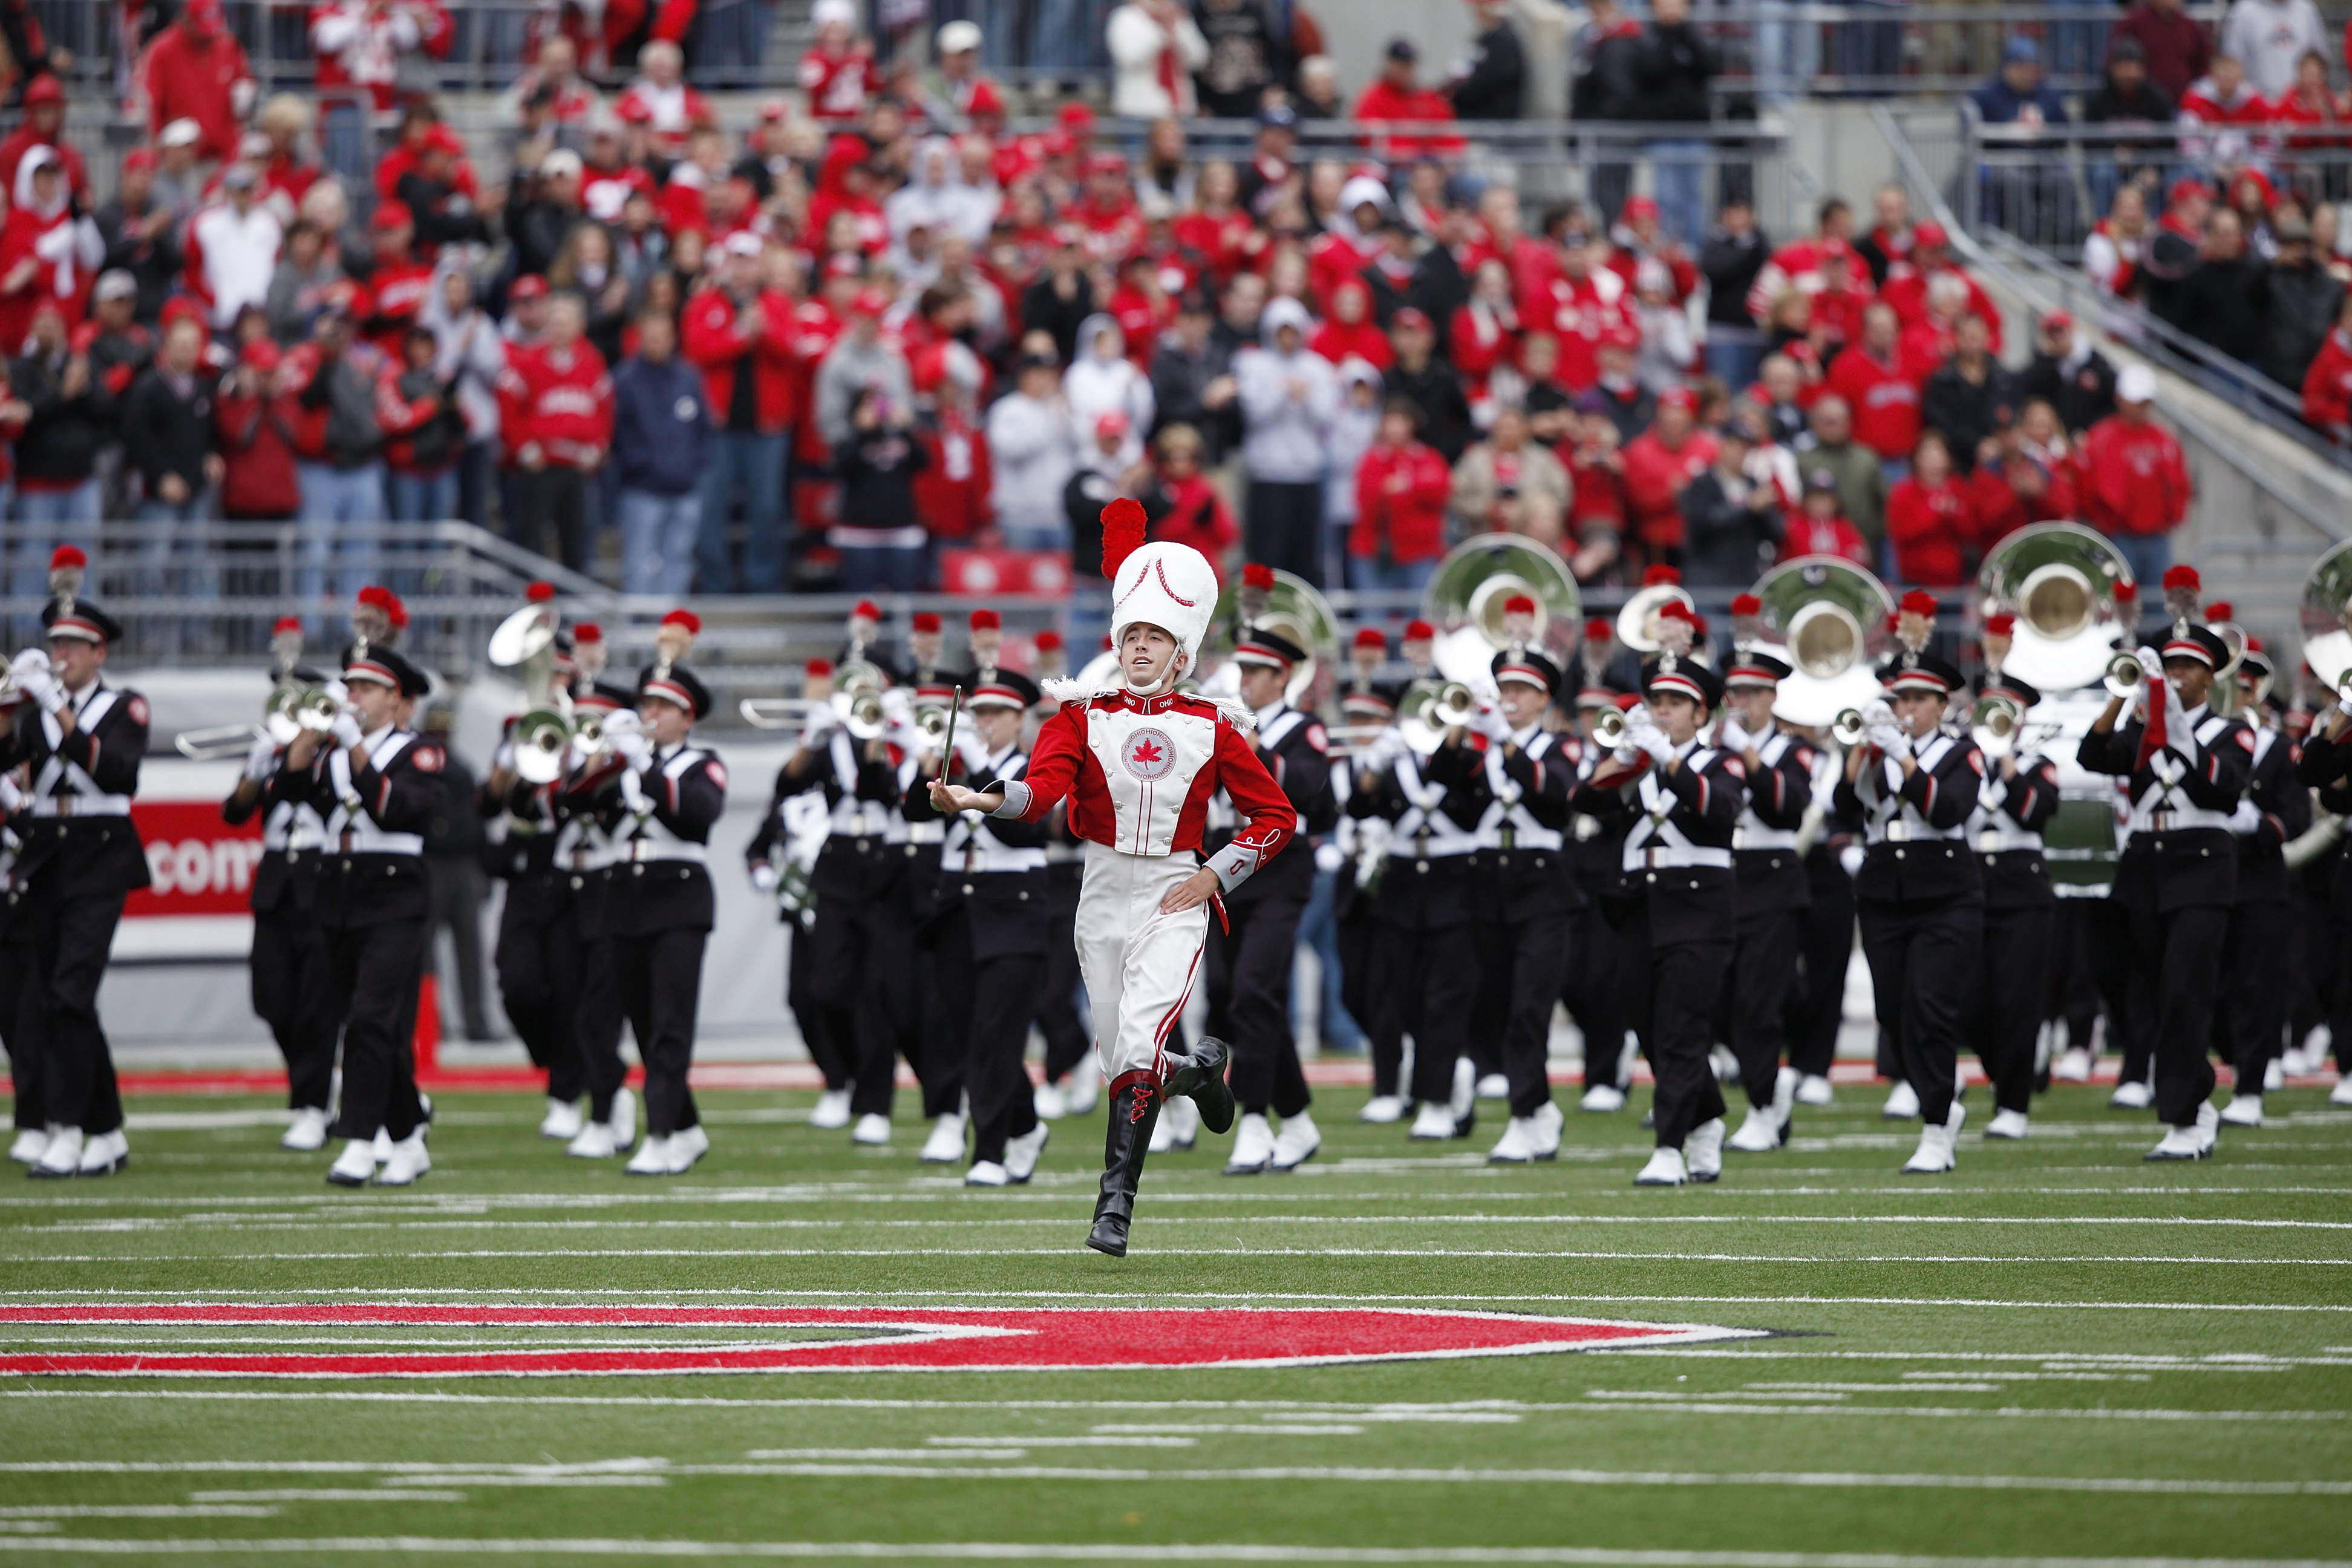 Sex scandal and the marching band inside the new rules at ohio columbus oh october 24 ohio state buckeyes marching band performs on the field before the game against the minnesota golden gophers at ohio stadium on malvernweather Image collections